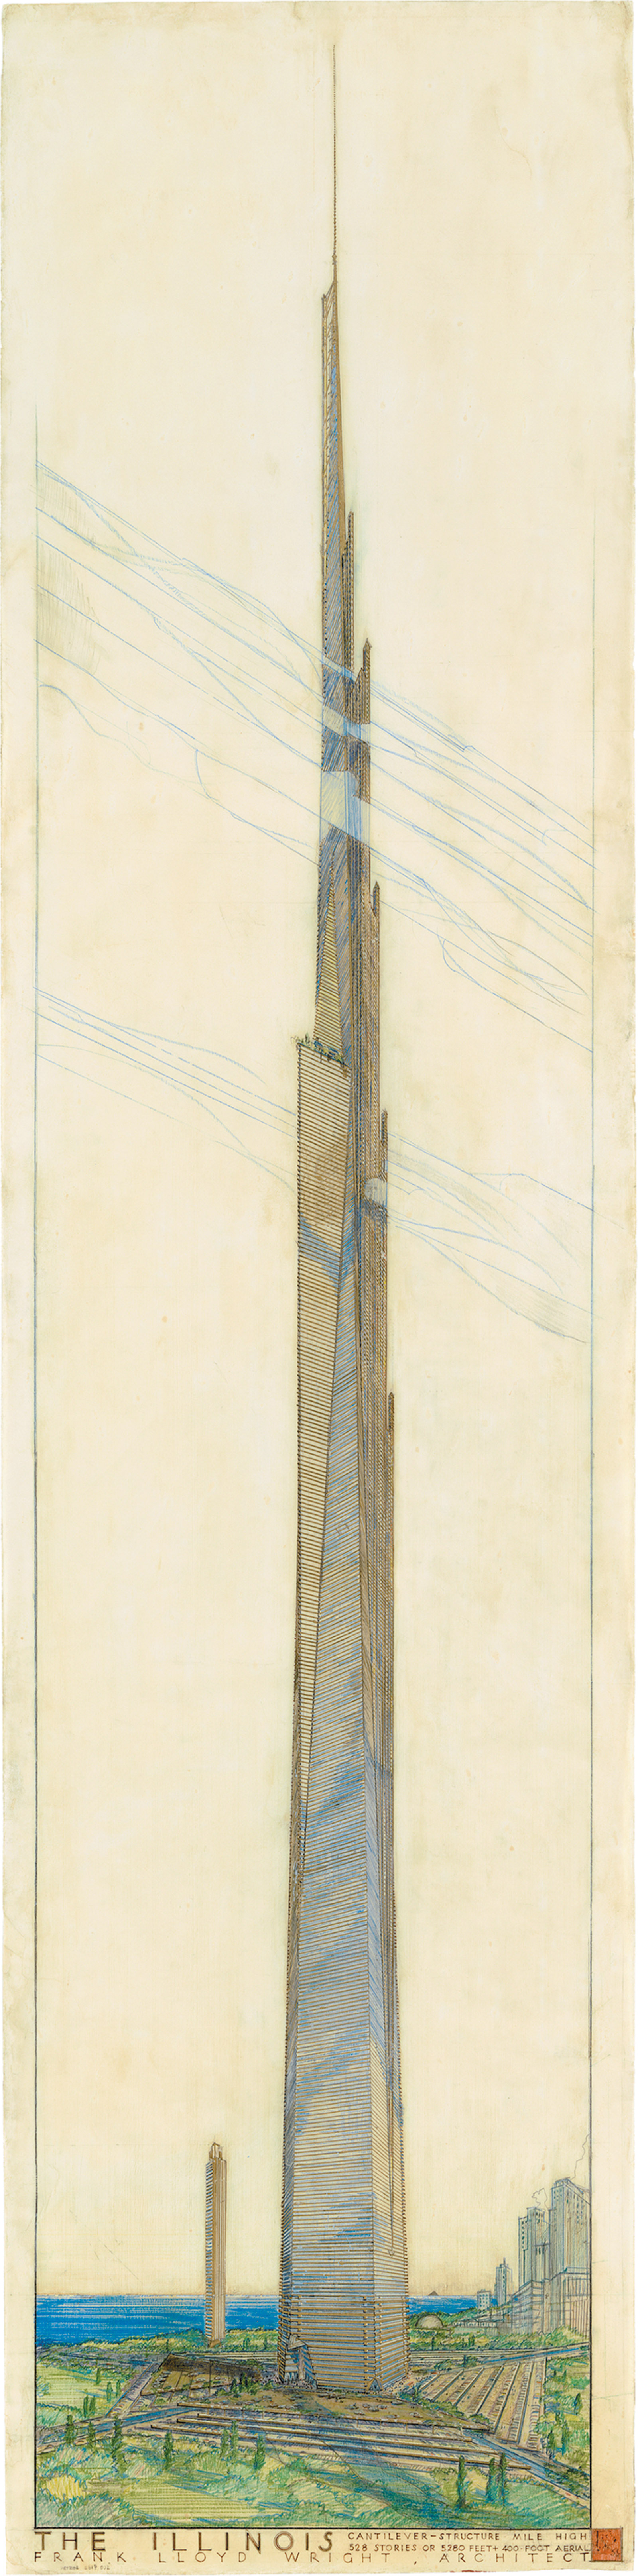 Twelve Ways Of Looking At Frank Lloyd Wright By Martin